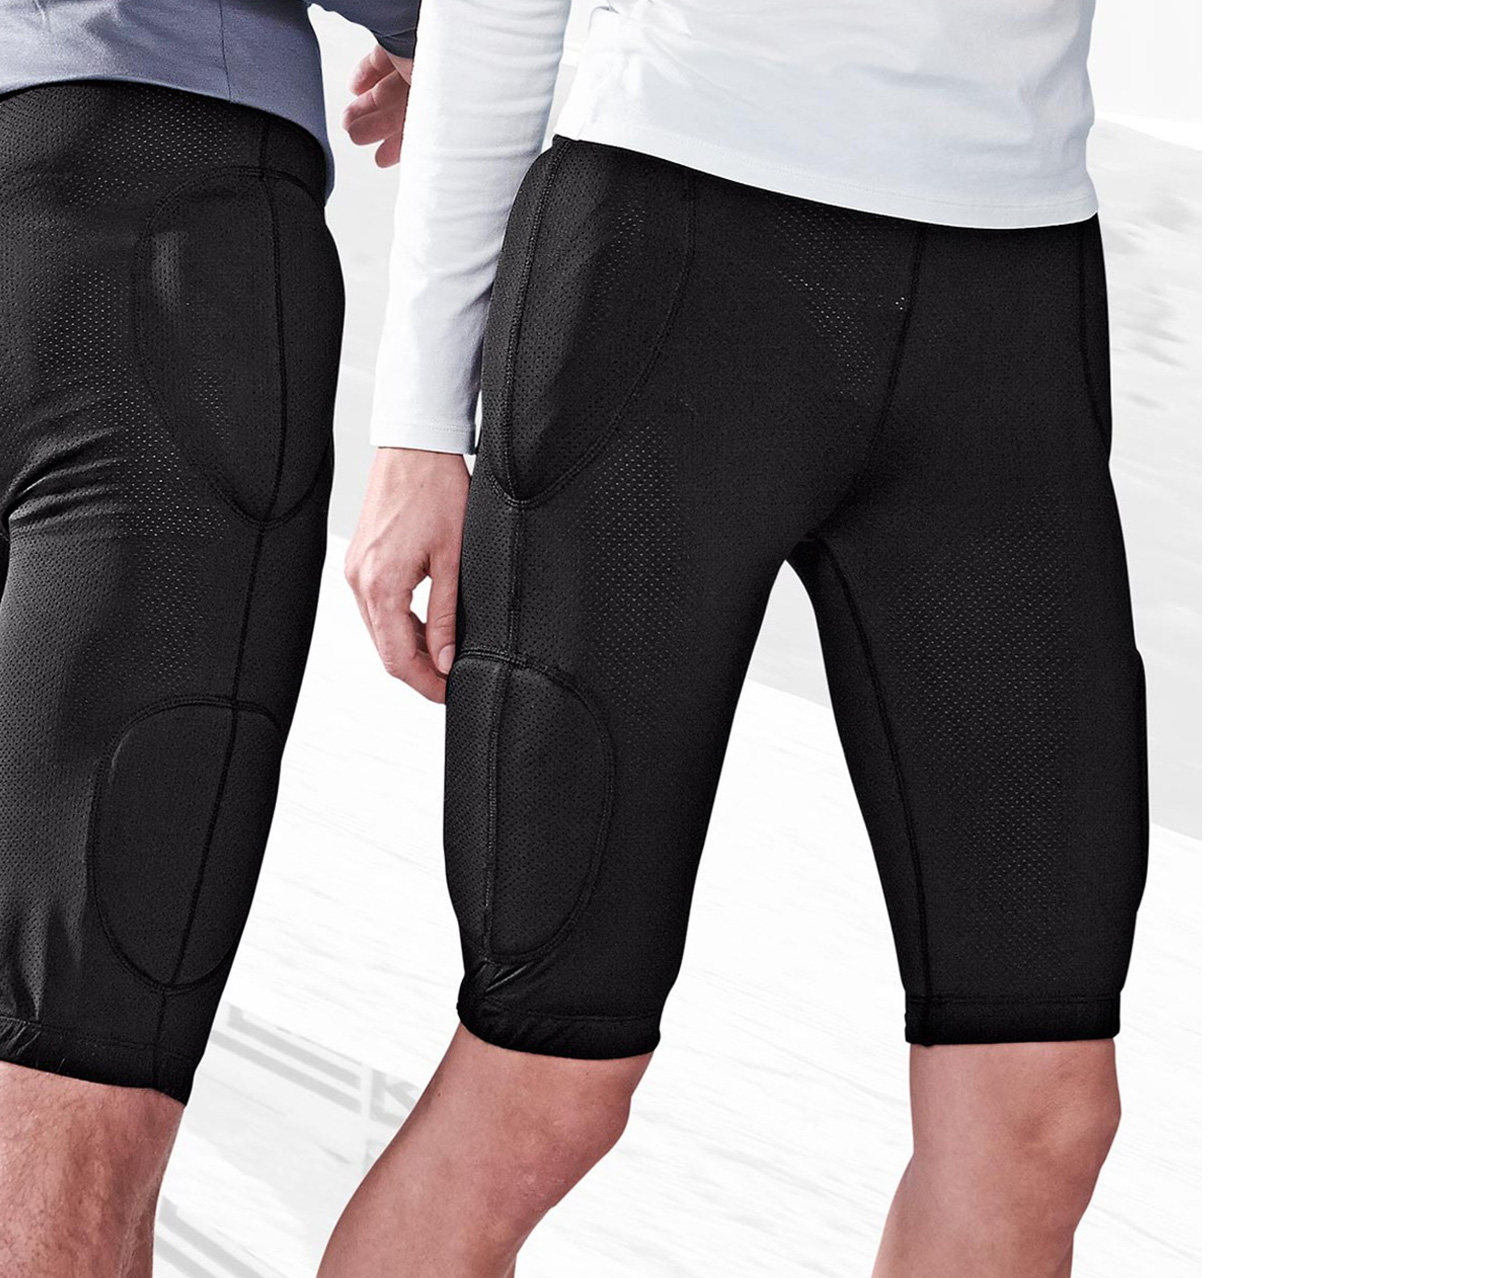 Men's Protector Trousers, Black